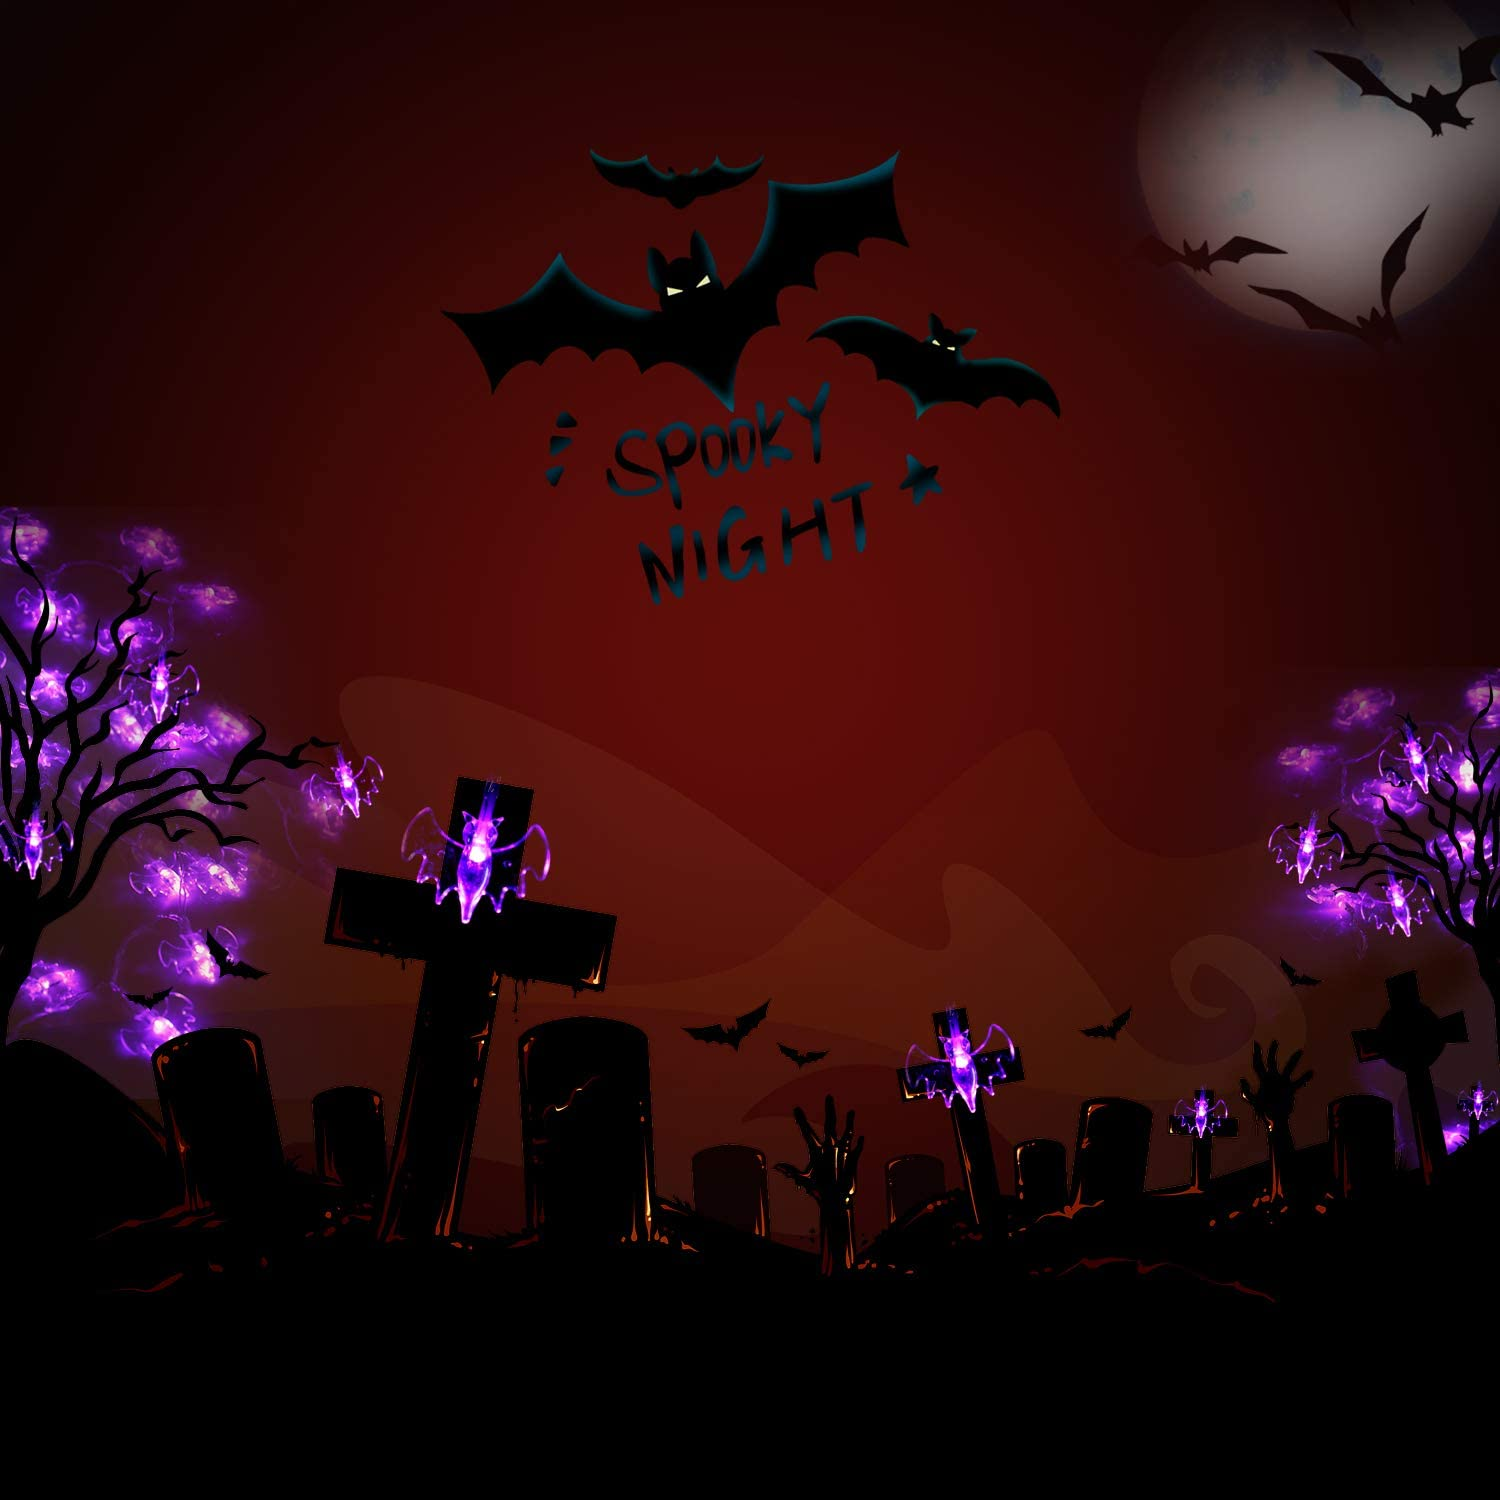 Transparent Bat Festival 30 LED Lights for Indoor and Outdoor Party Orange Jack-O-Lantern Warm Light Pumpkins and Purple Bats Halloween Decoration Lights String with Battery Operated